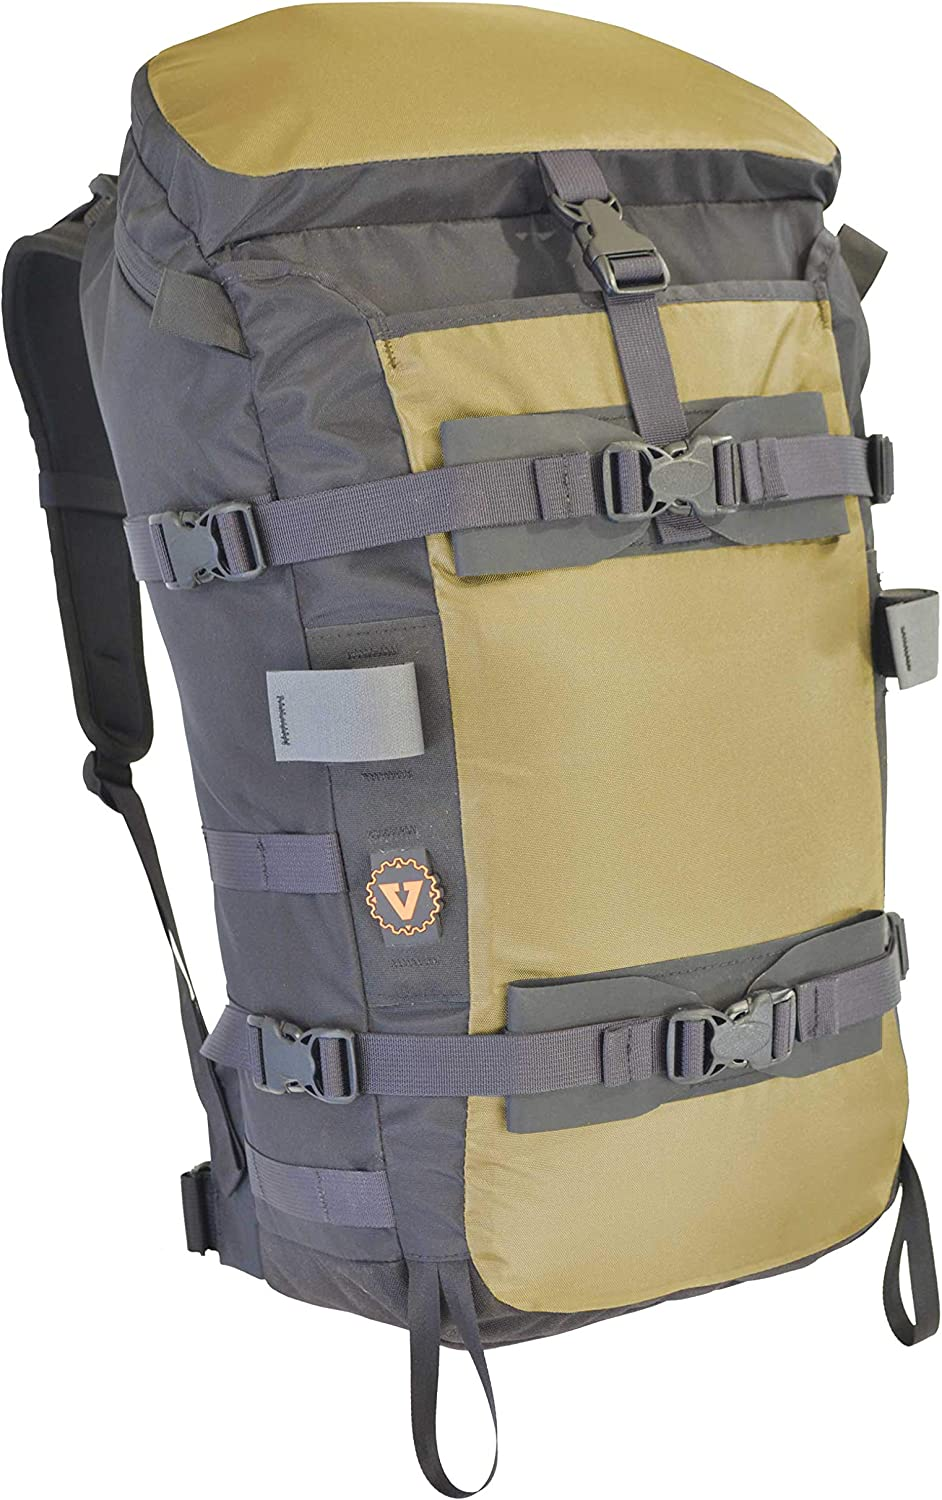 Year-end gift Vertical Gear Fresh Be super welcome Backpack 30 Air